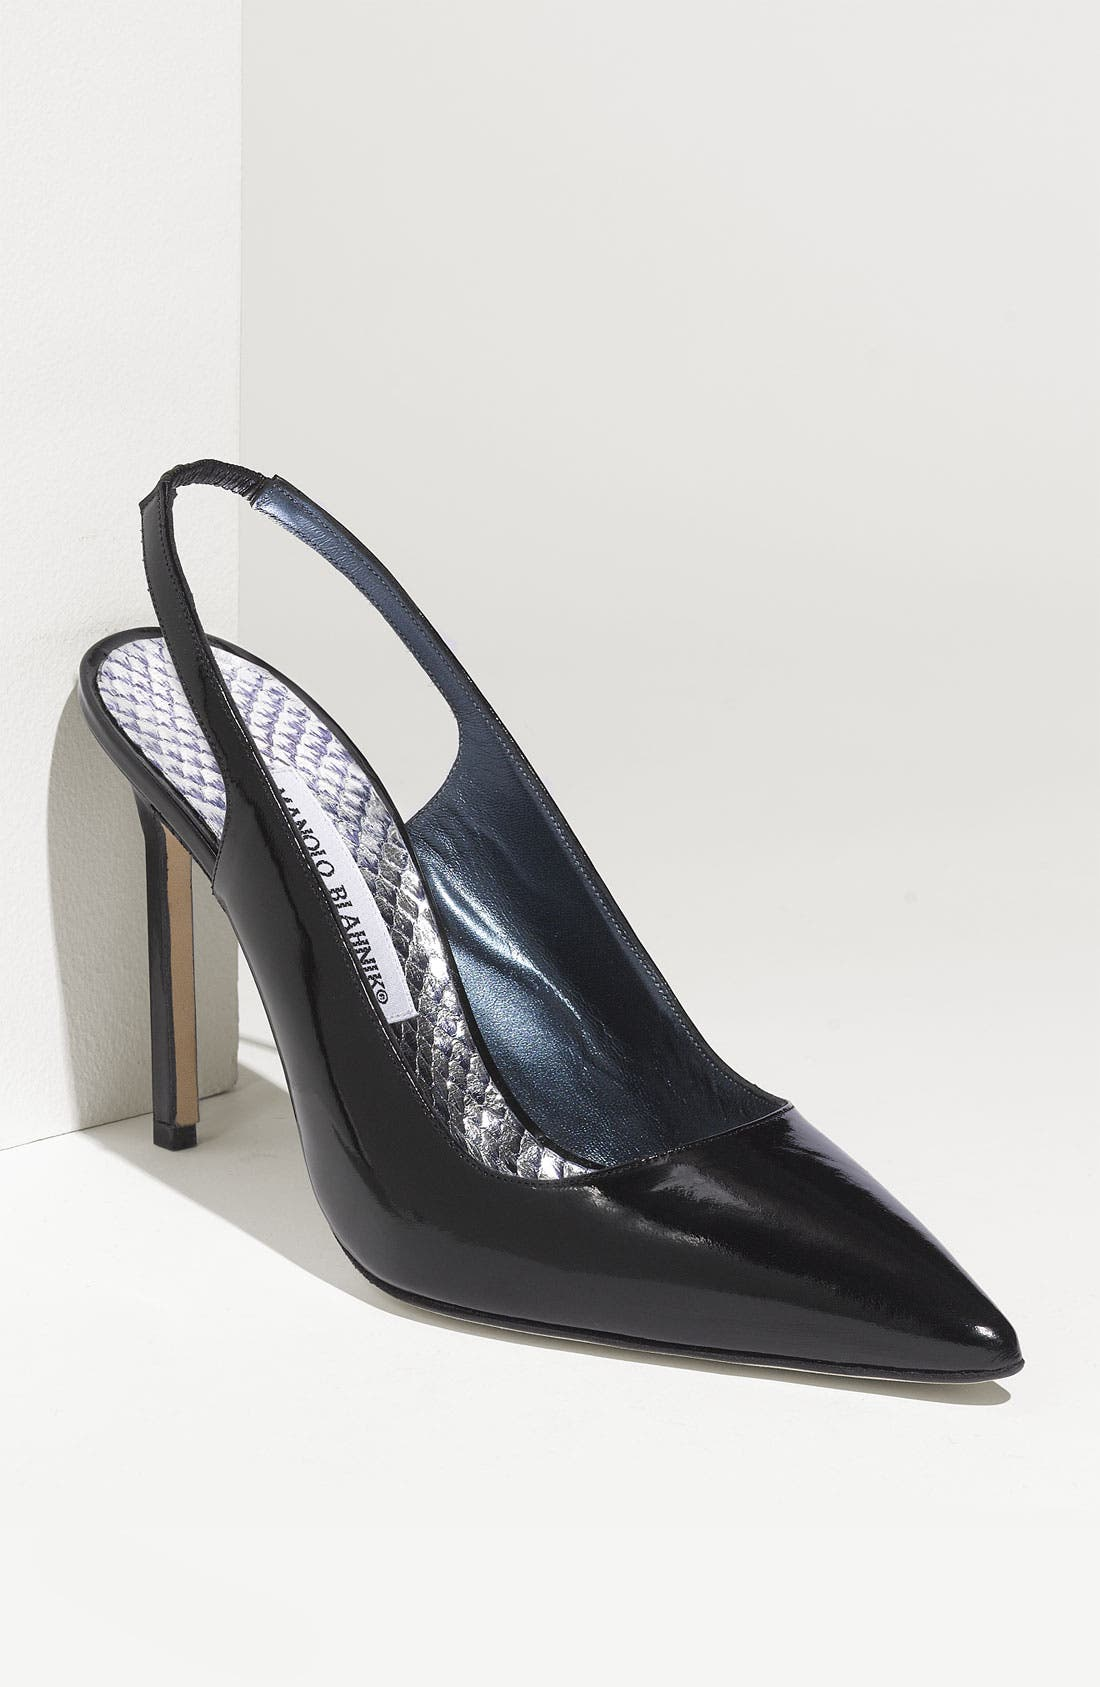 Alternate Image 1 Selected - Manolo Blahnik 'Marcafac' Patent Pump